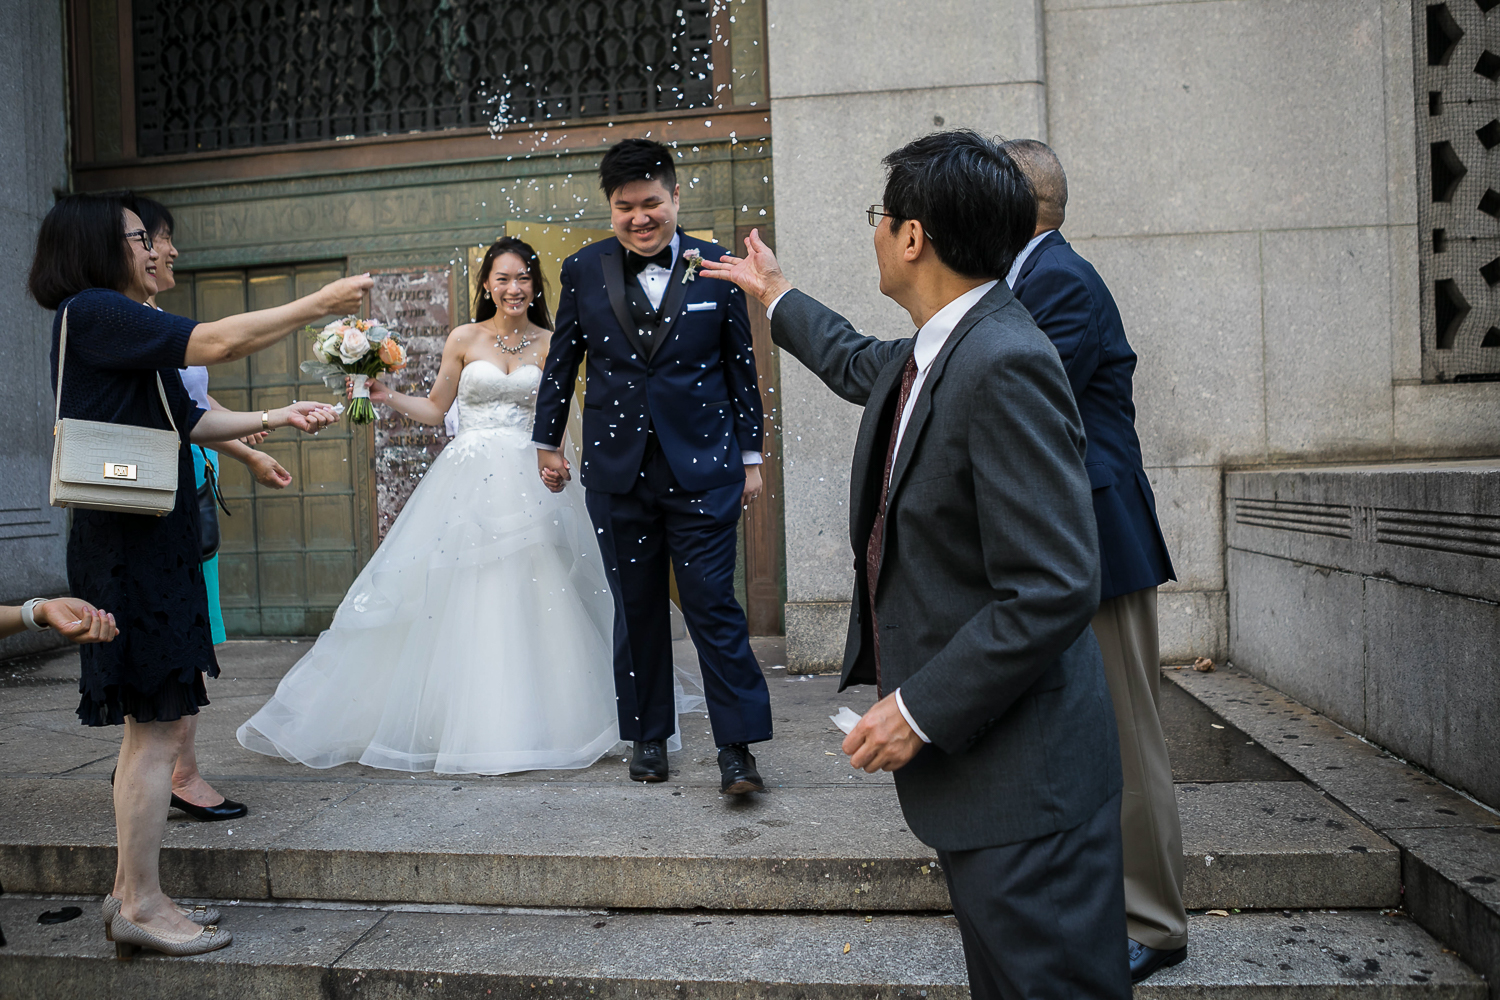 Wedding guests throwing confetti at the couple after getting married at City Hall NYC | New York City Hall Wedding Photographer | Jason and Susanna's Glam NYC Elopement